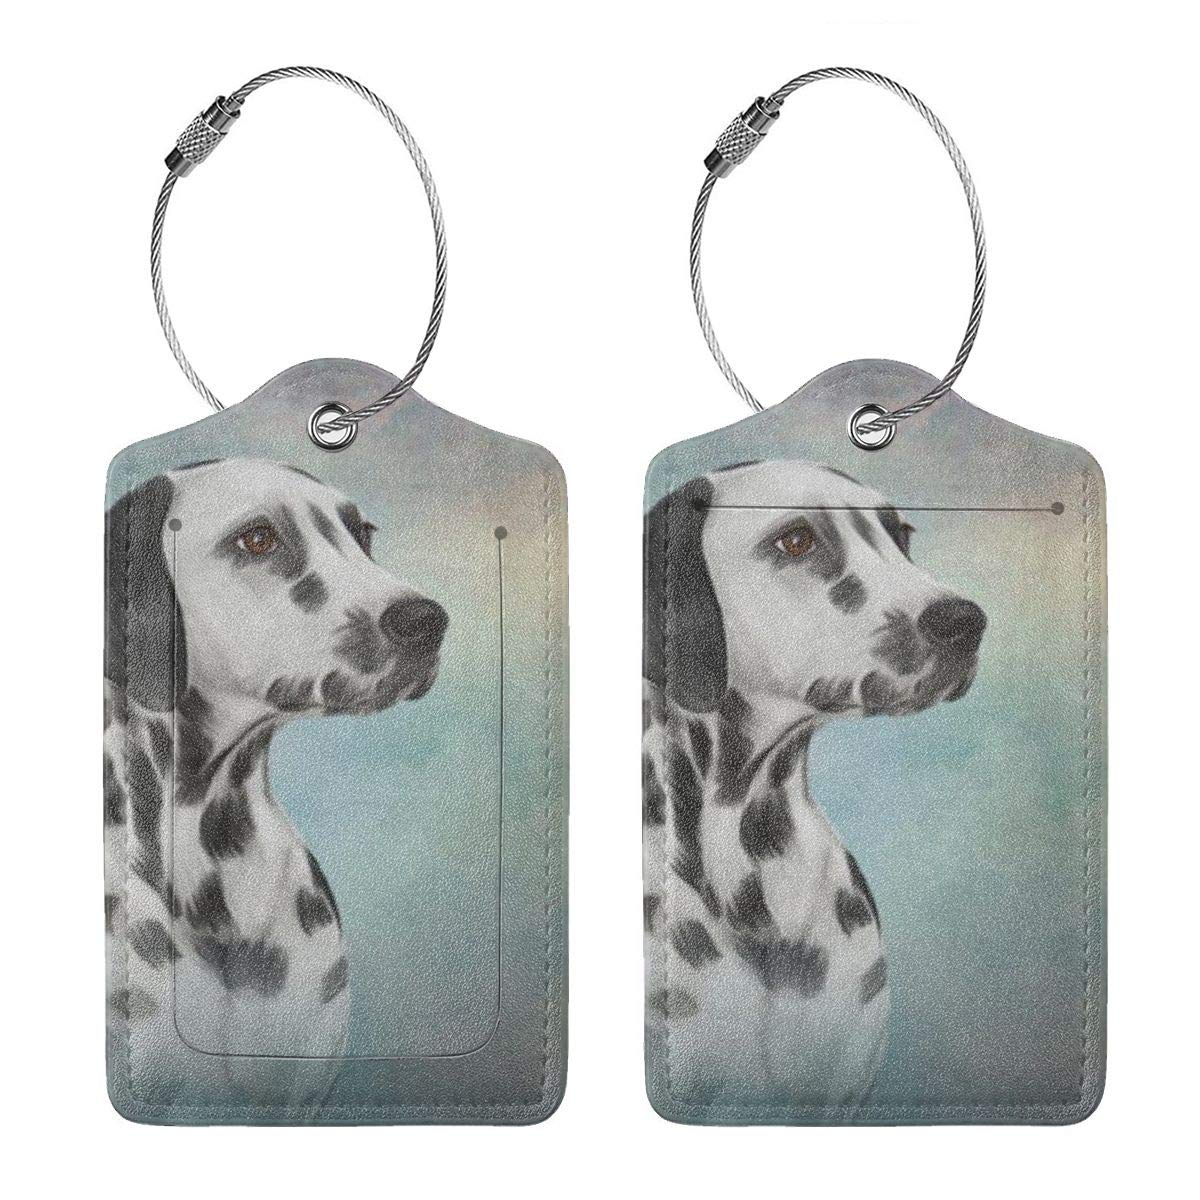 Dalmatian Dog Vintage Leather Luggage Tags Personalized Flexible Custom Travel Tags With Privacy Flap